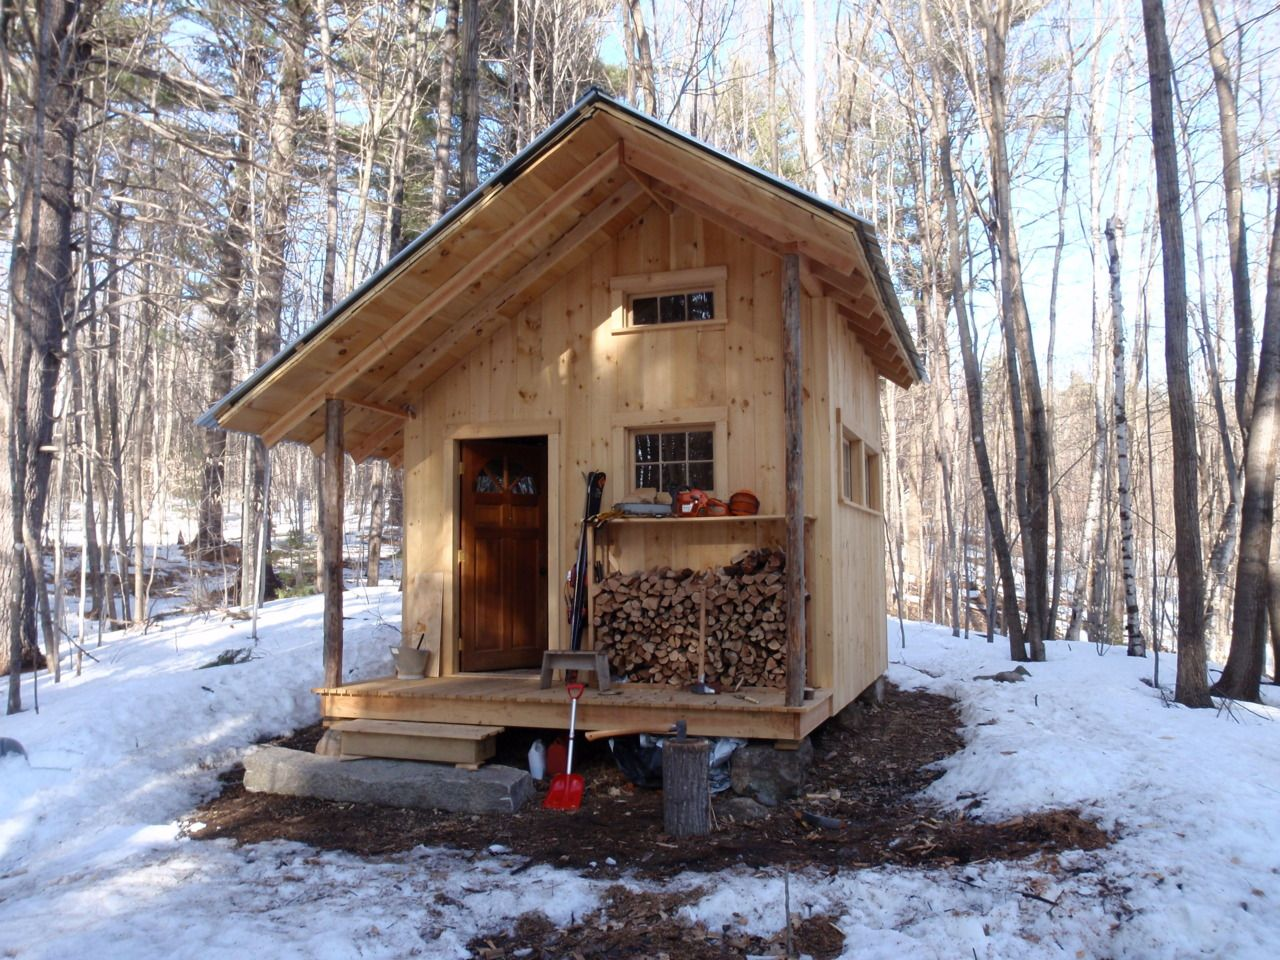 The Fernstone Cabin Built With Local Materials In